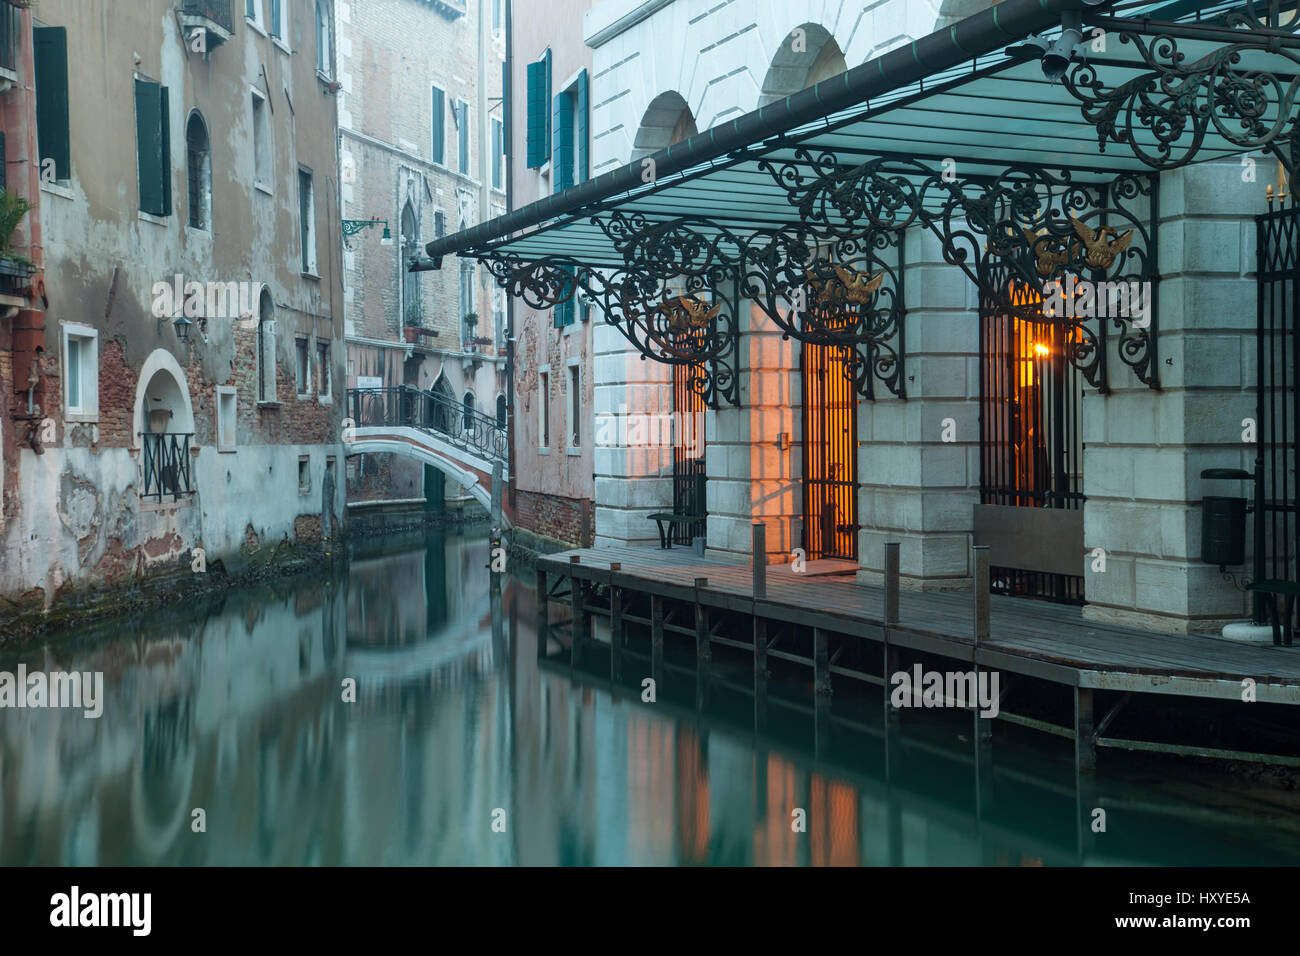 Foggy morning on a canal in sestiere of San Marco, Venice, Italy. - Stock Image